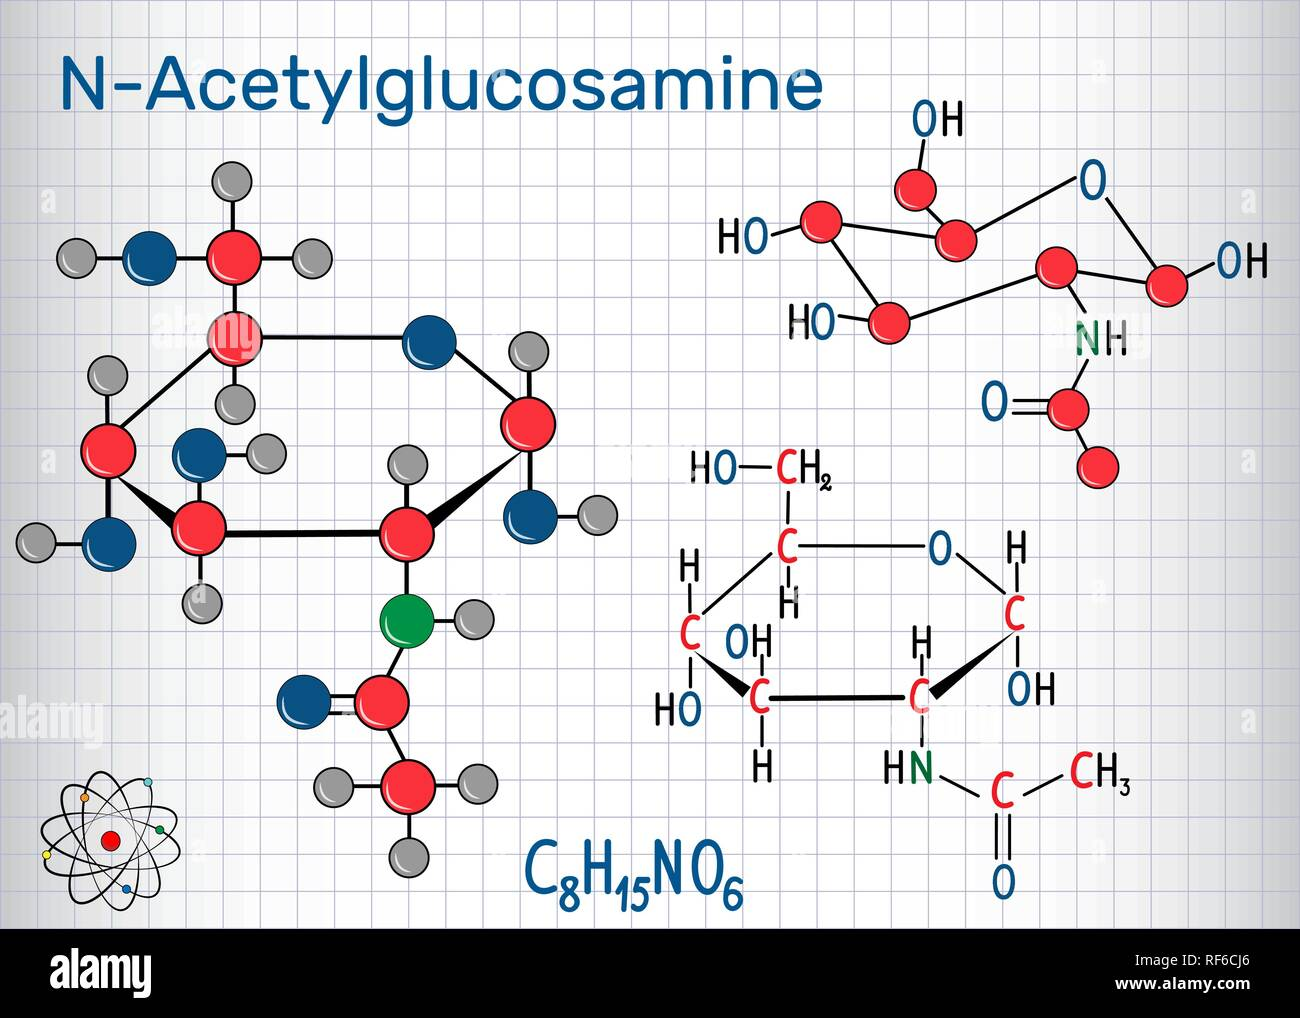 N-Acetylglucosamine (NAG) molecule, is the monomeric unit of the chitin and polymerized with glucuronic acid, it forms hyaluronic acid. Sheet of paper Stock Vector